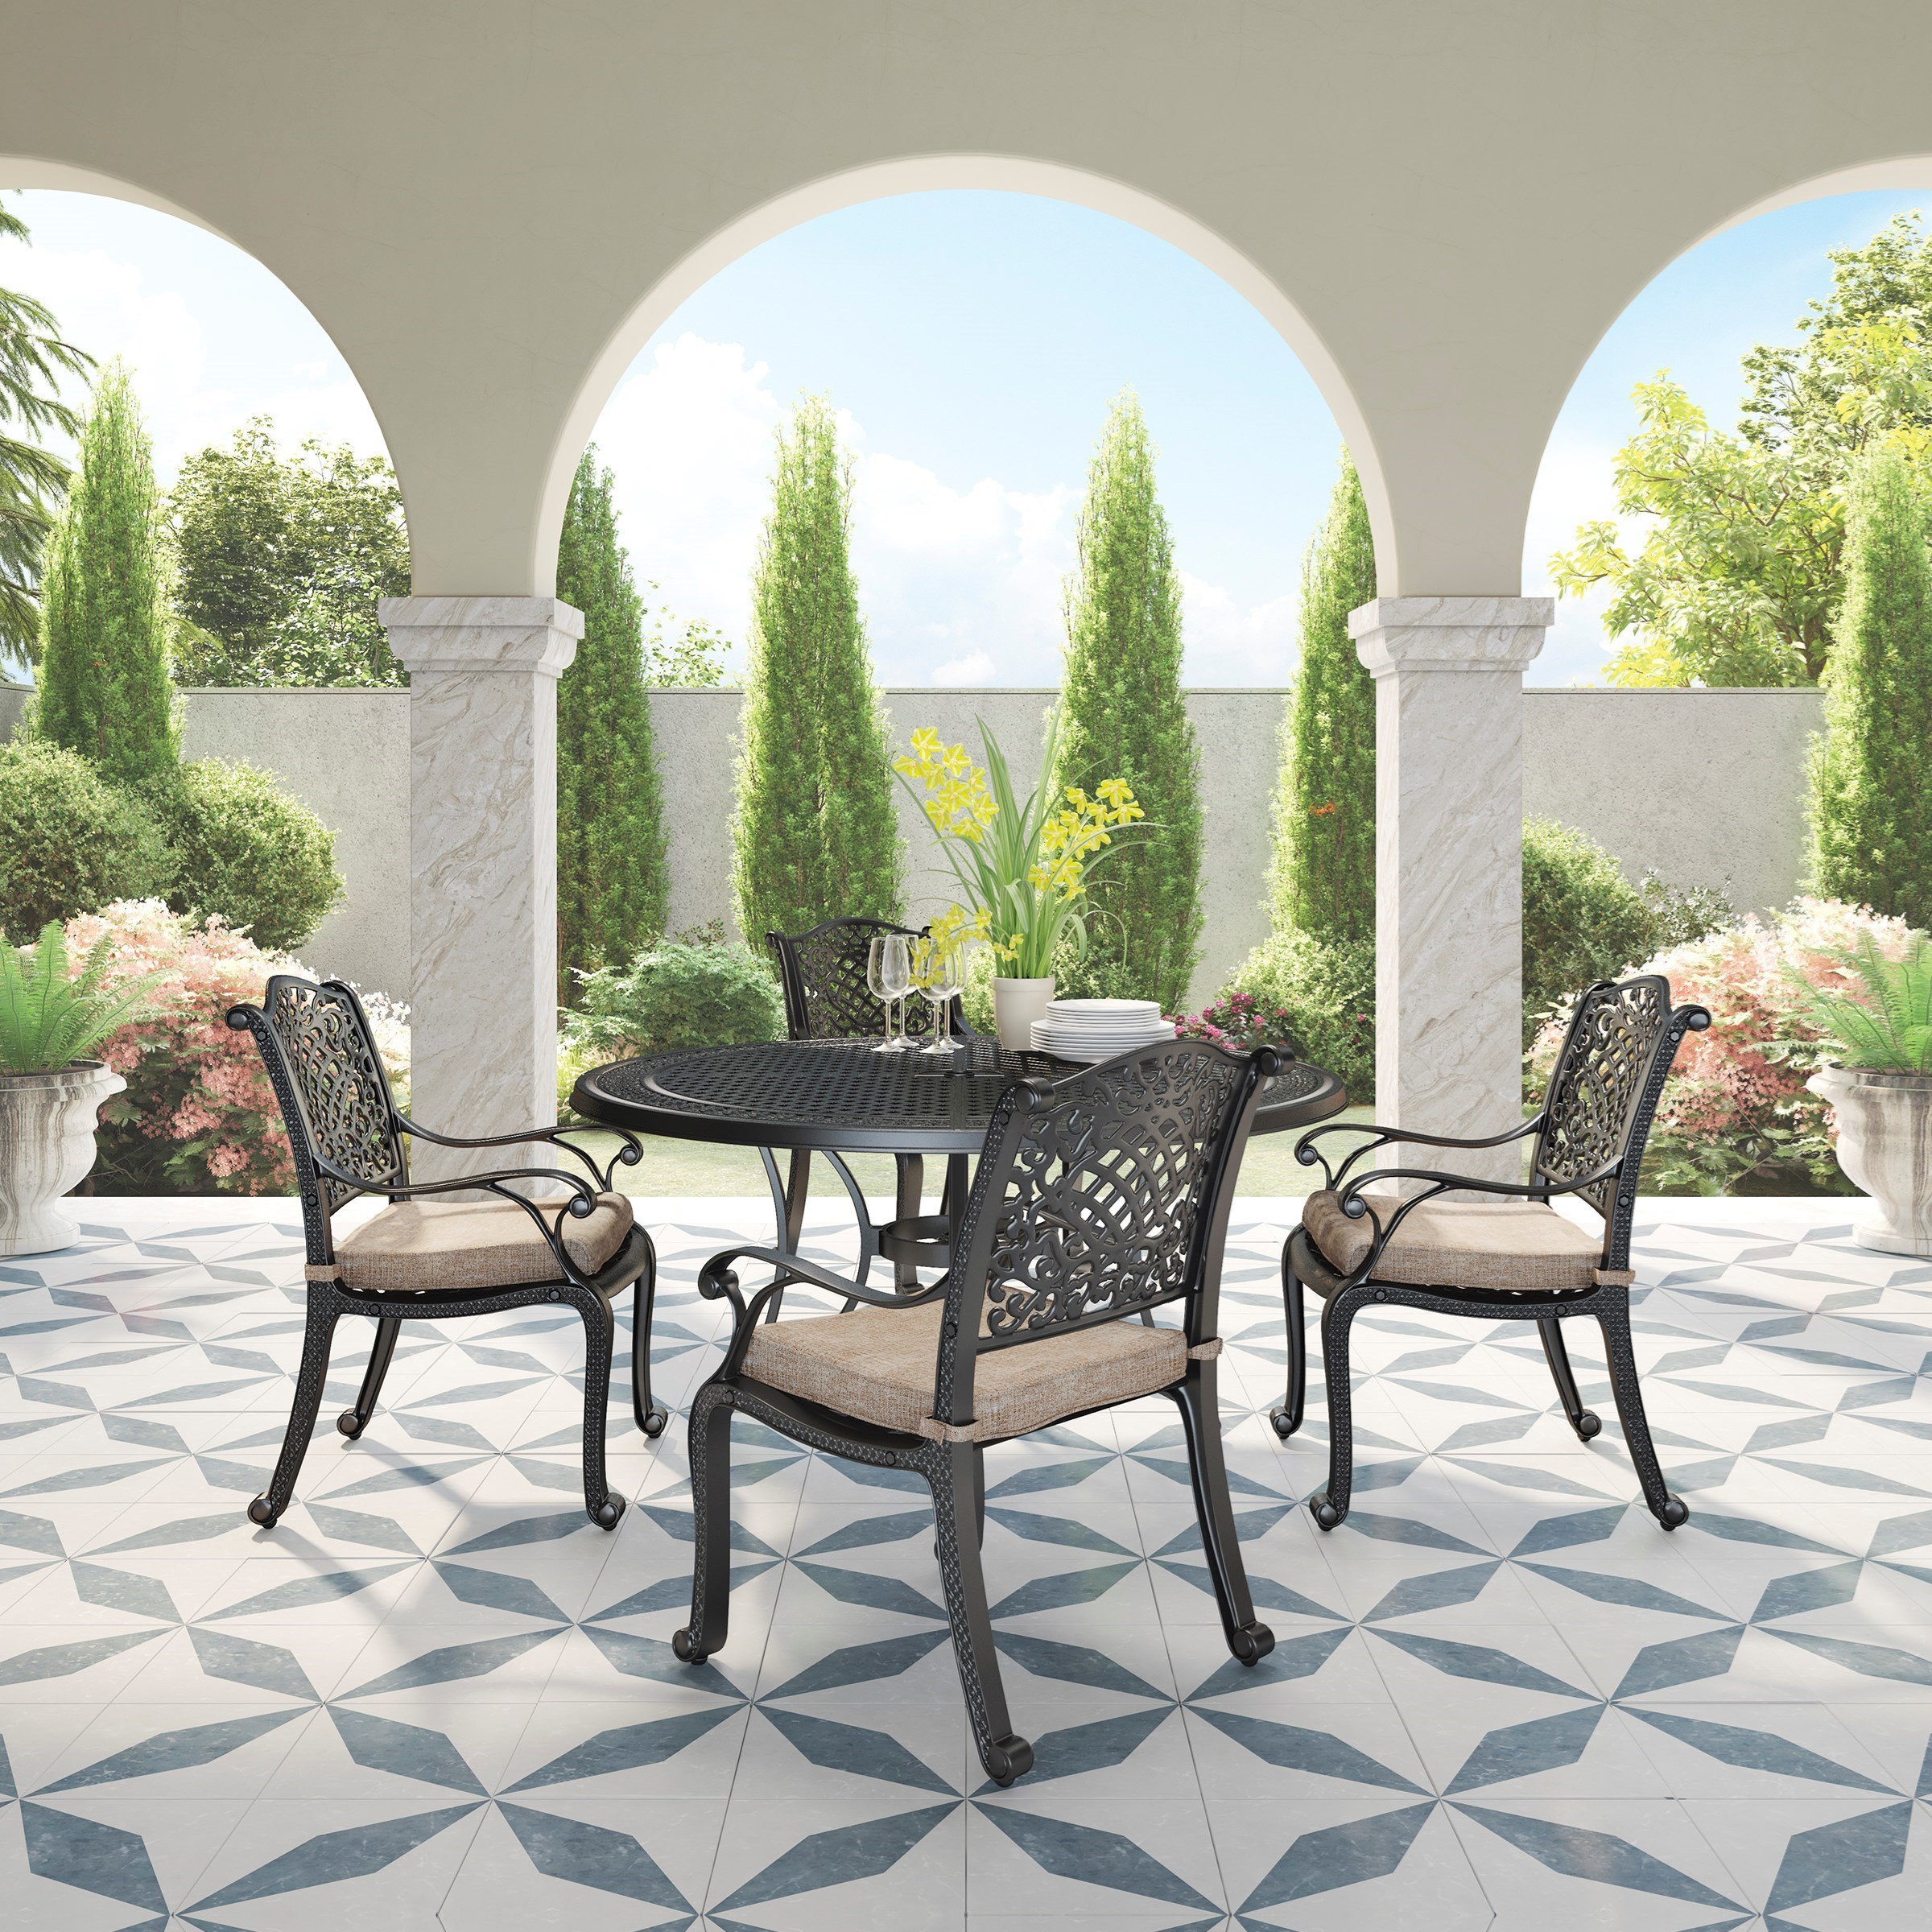 5 piece outdoor dining set. Signature Design By Ashley Rose View 5 Piece Outdoor Dining Set - Item Number: P559 E